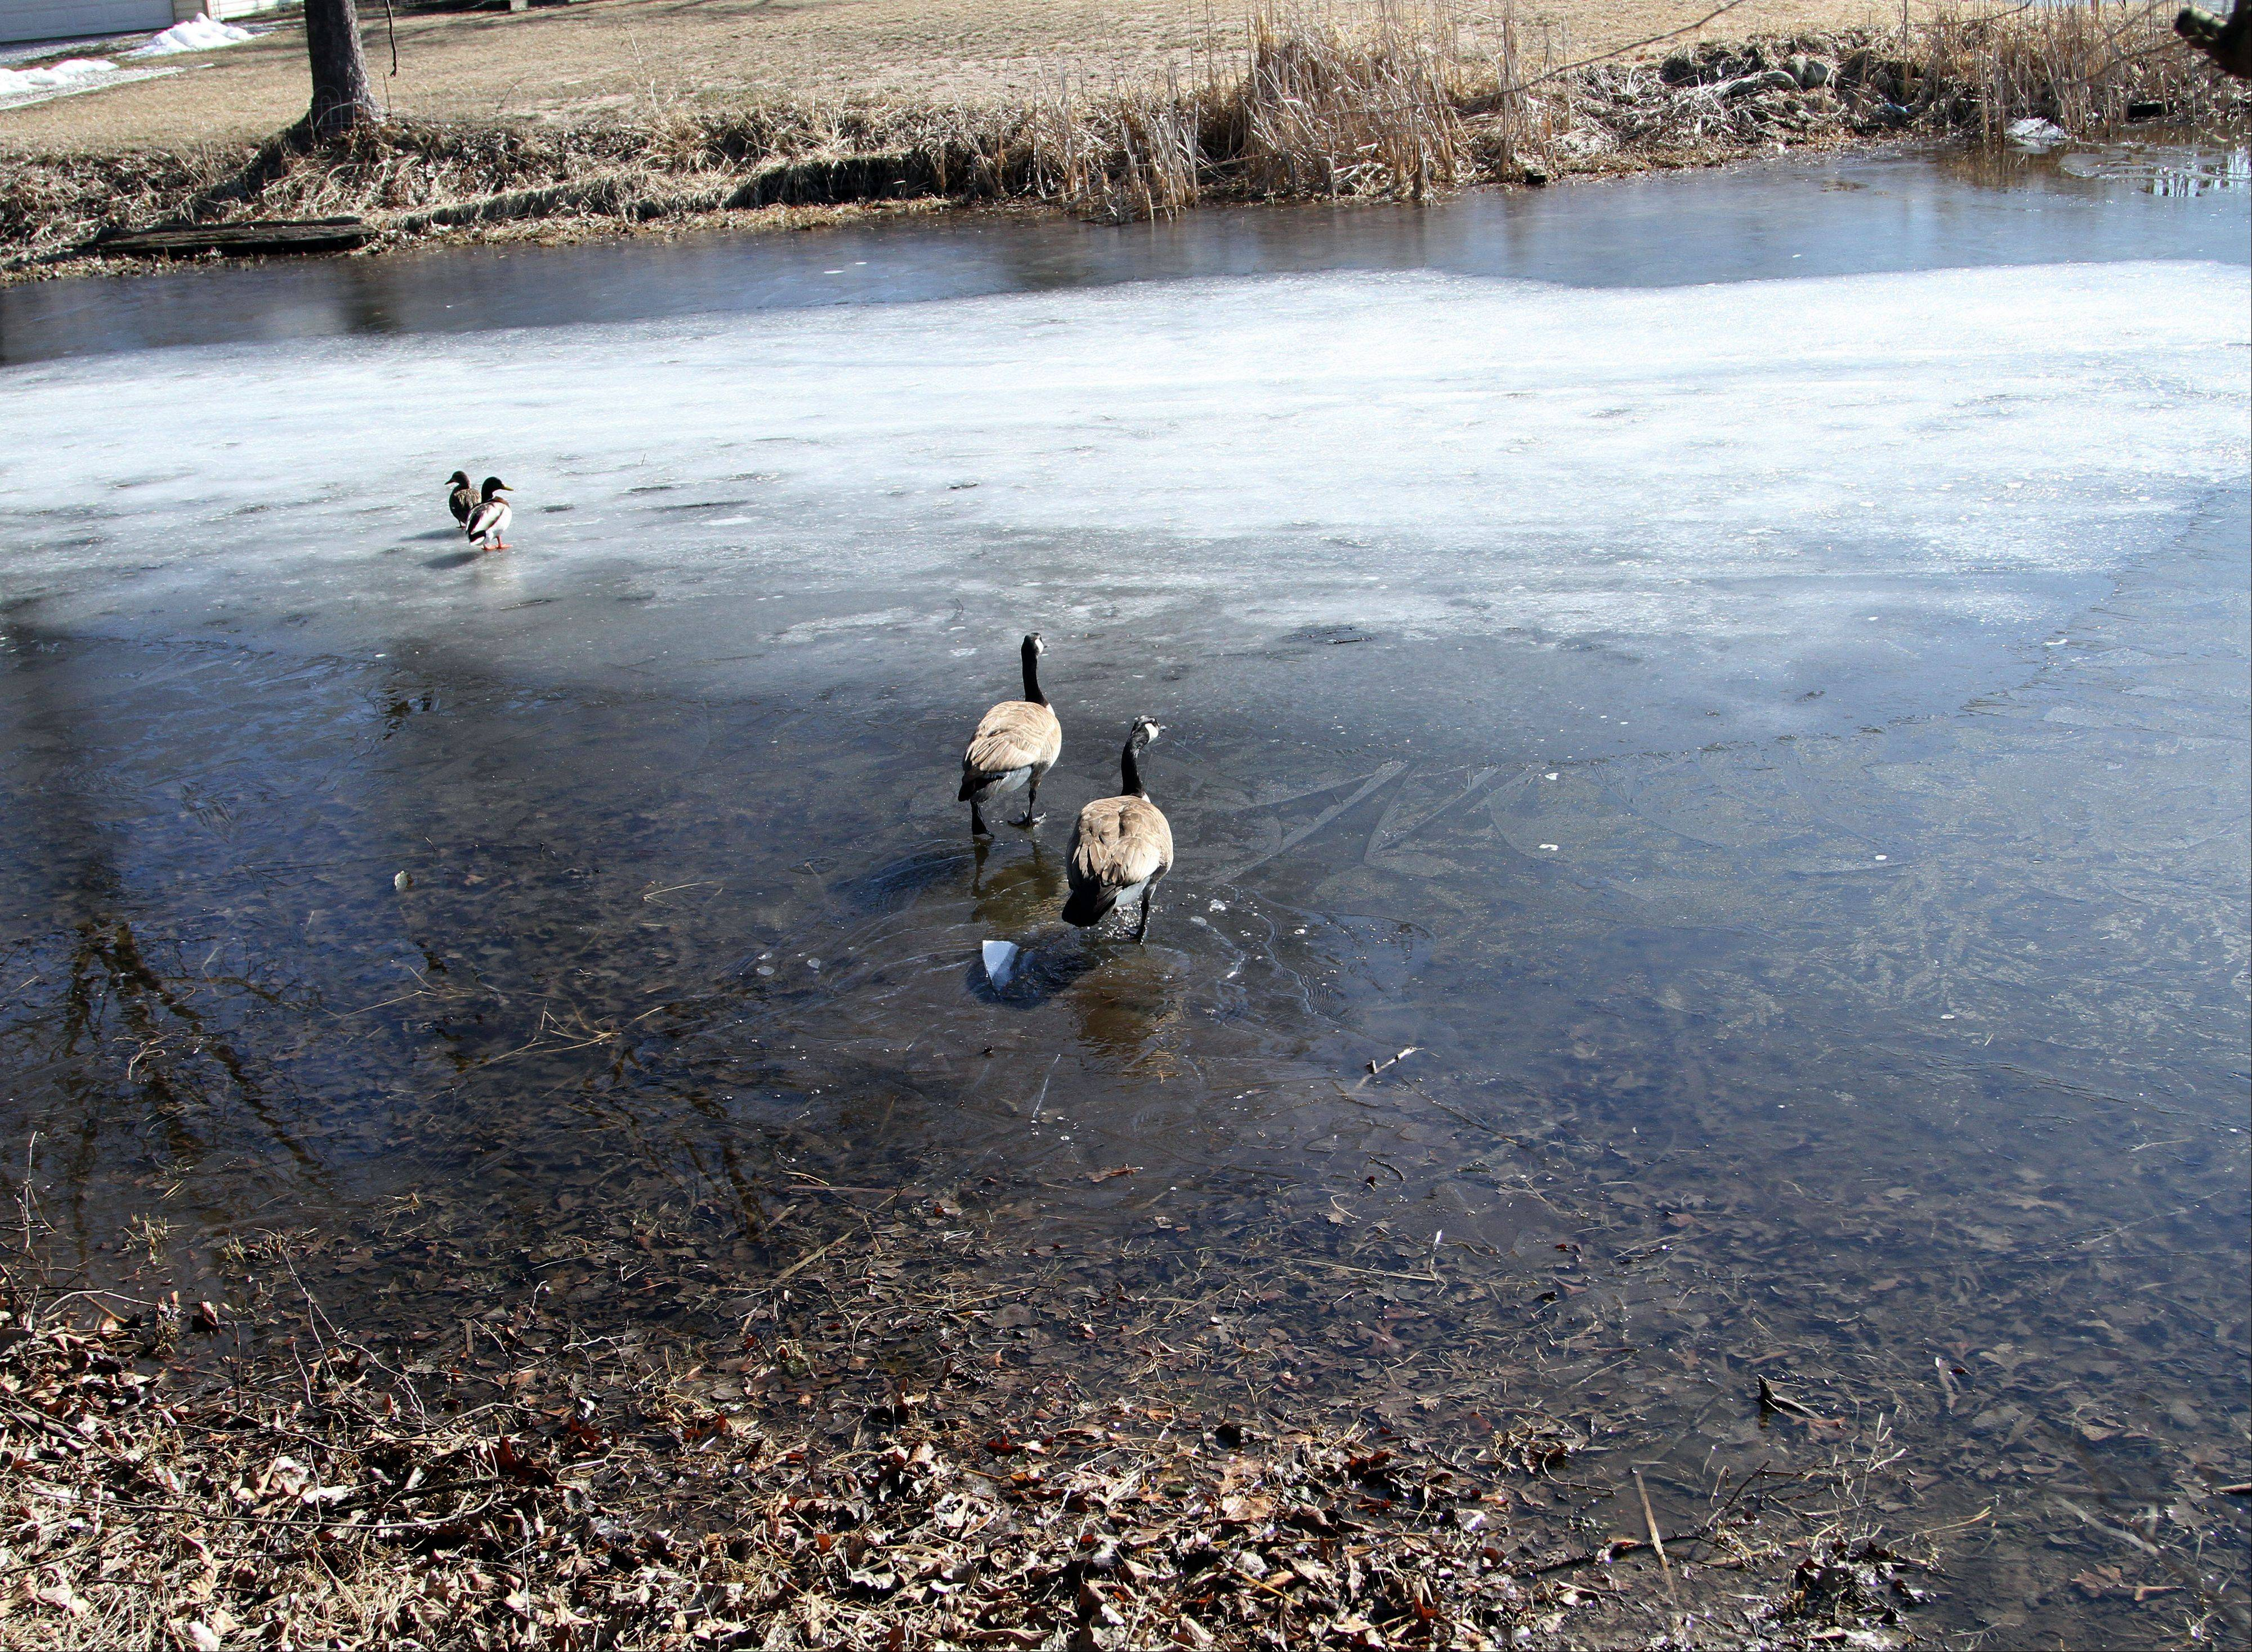 Ducks and geese traverse the mouth of the channel that feeds into Bangs Lake in Wauconda, but boats couldn't do the same during last year's drought conditions. Residents have formed an alliance which hopes to get the channel dredged.